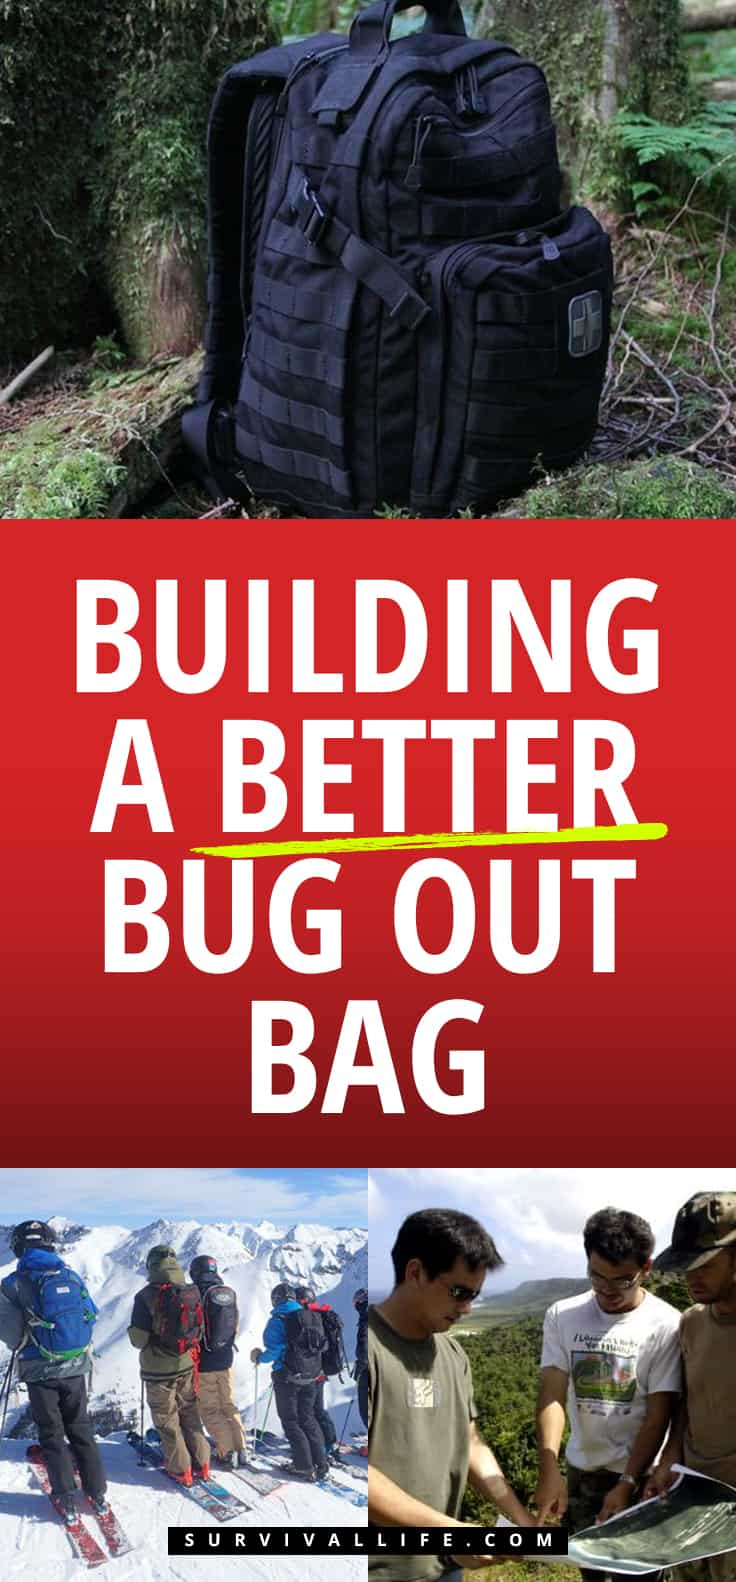 Building A Better Bug Out Bag